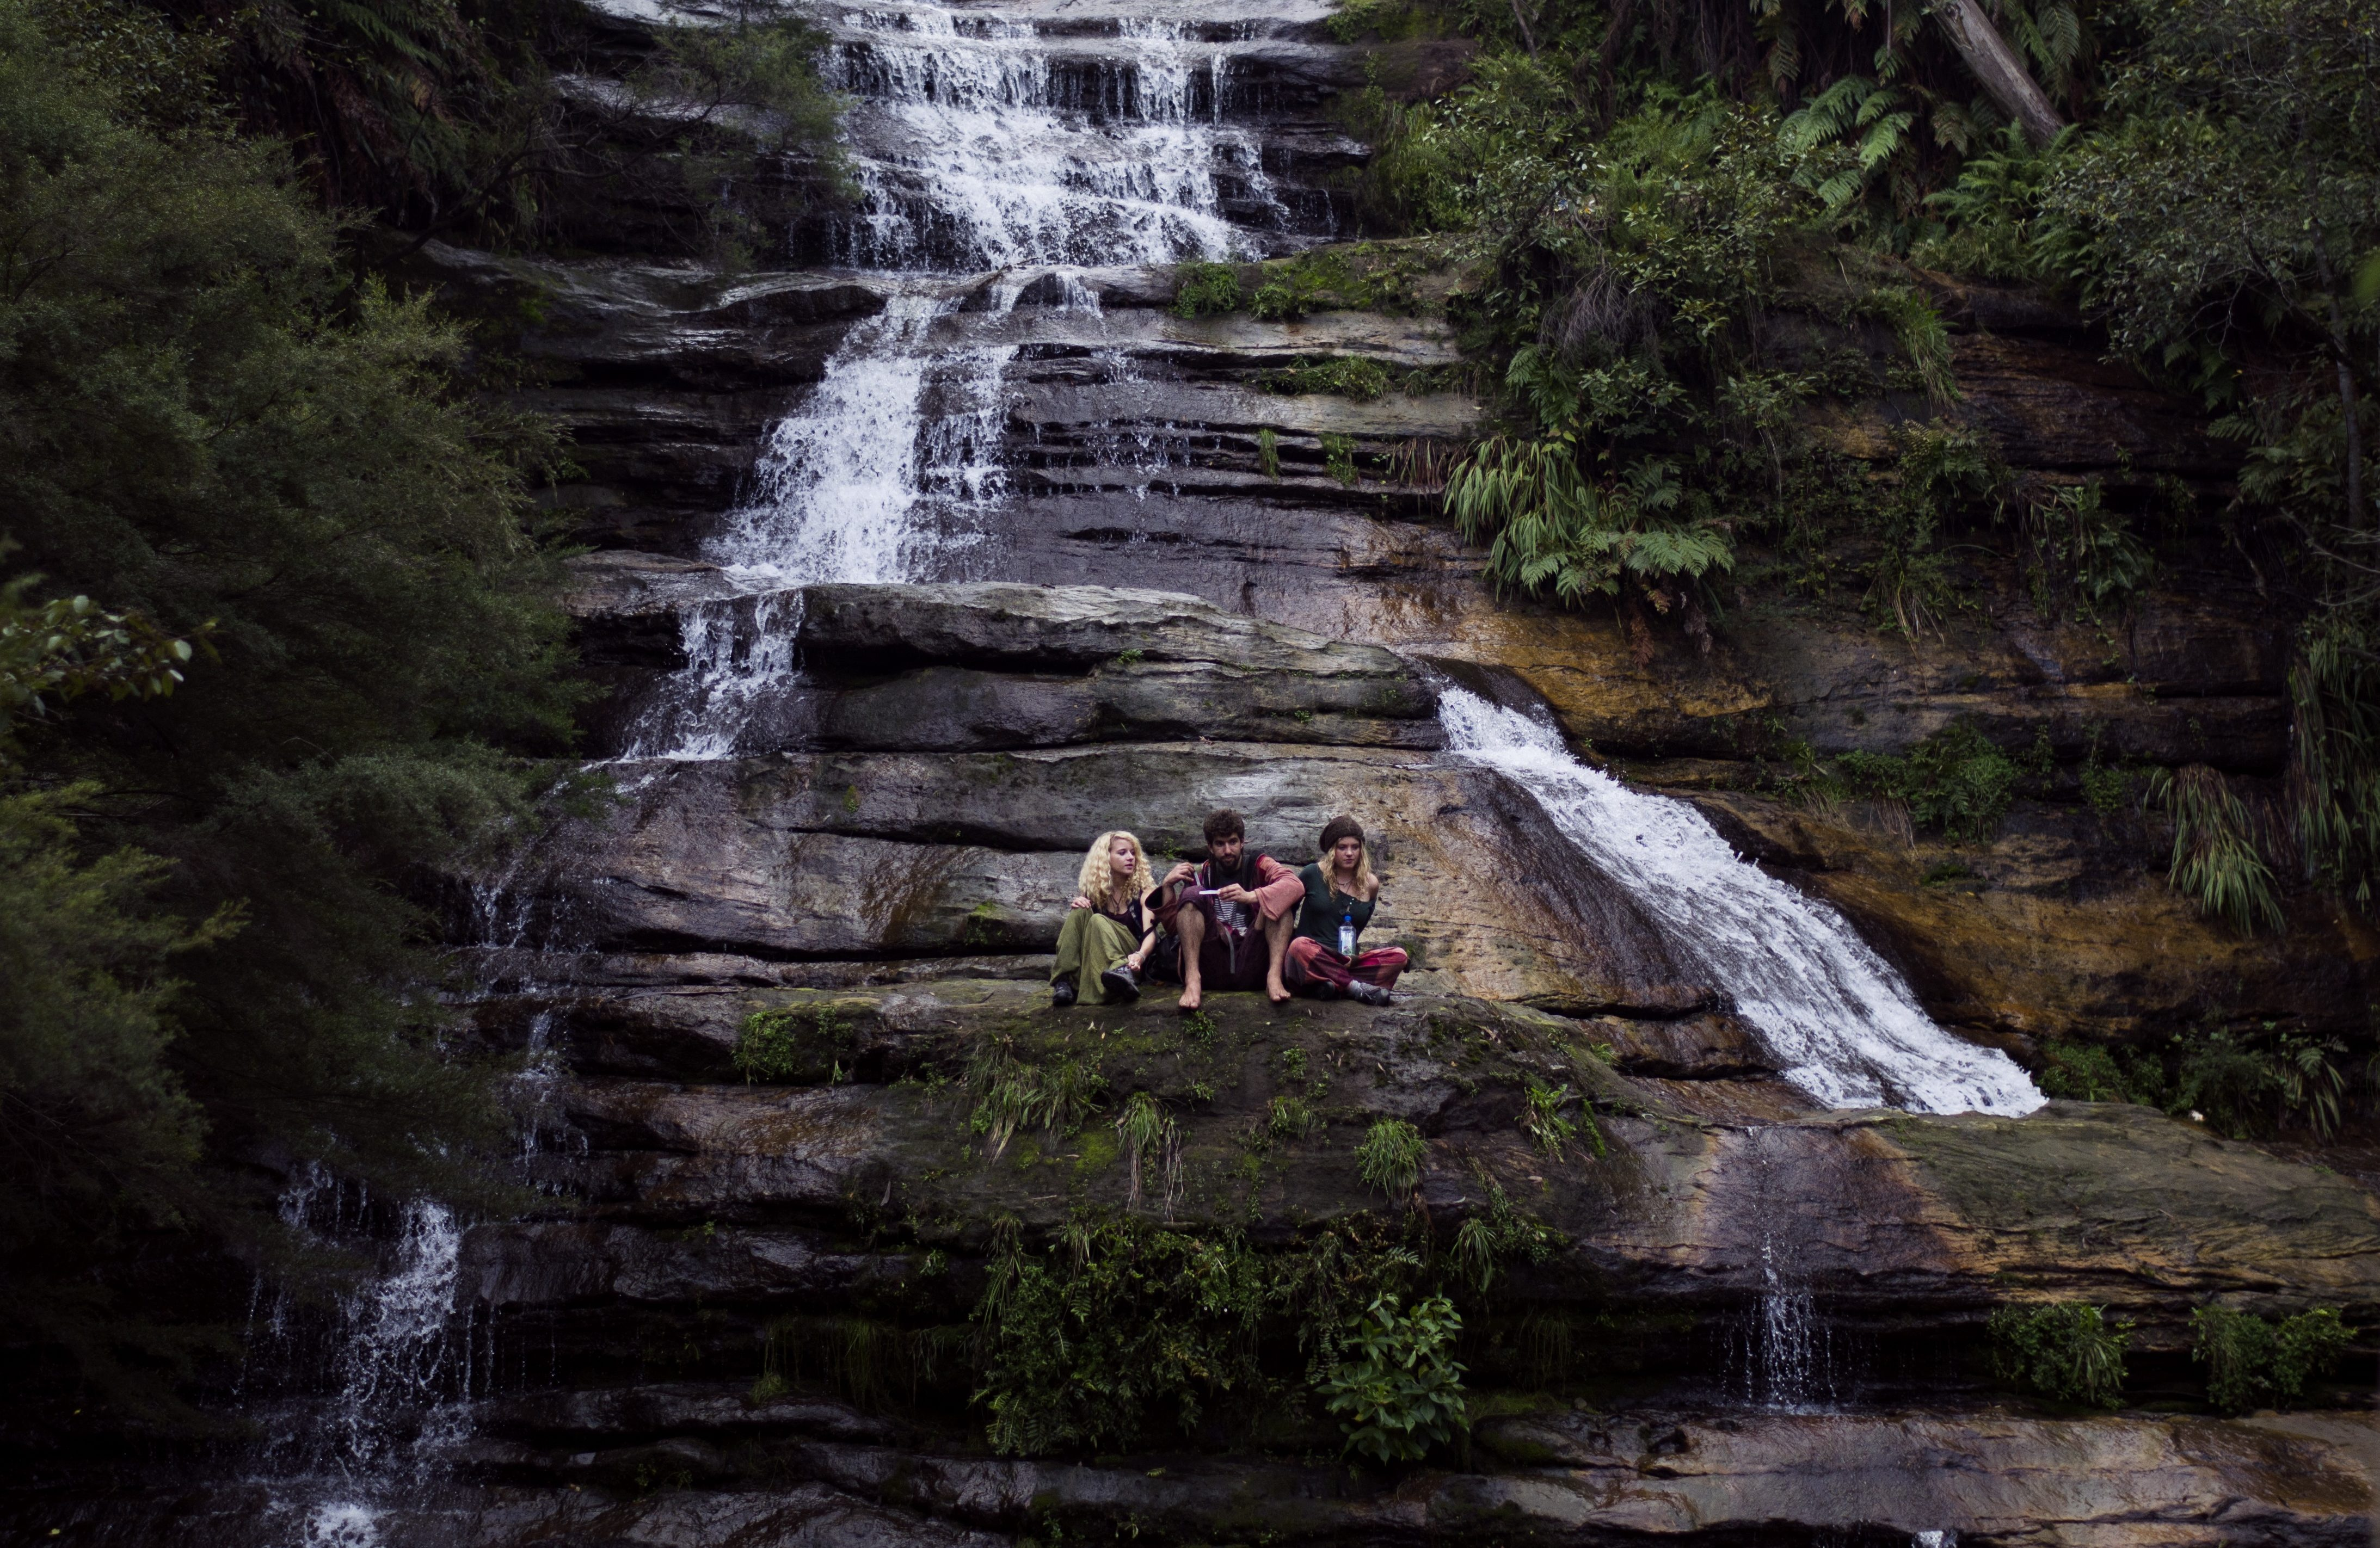 camping people waterfall nature hiking friends challenge